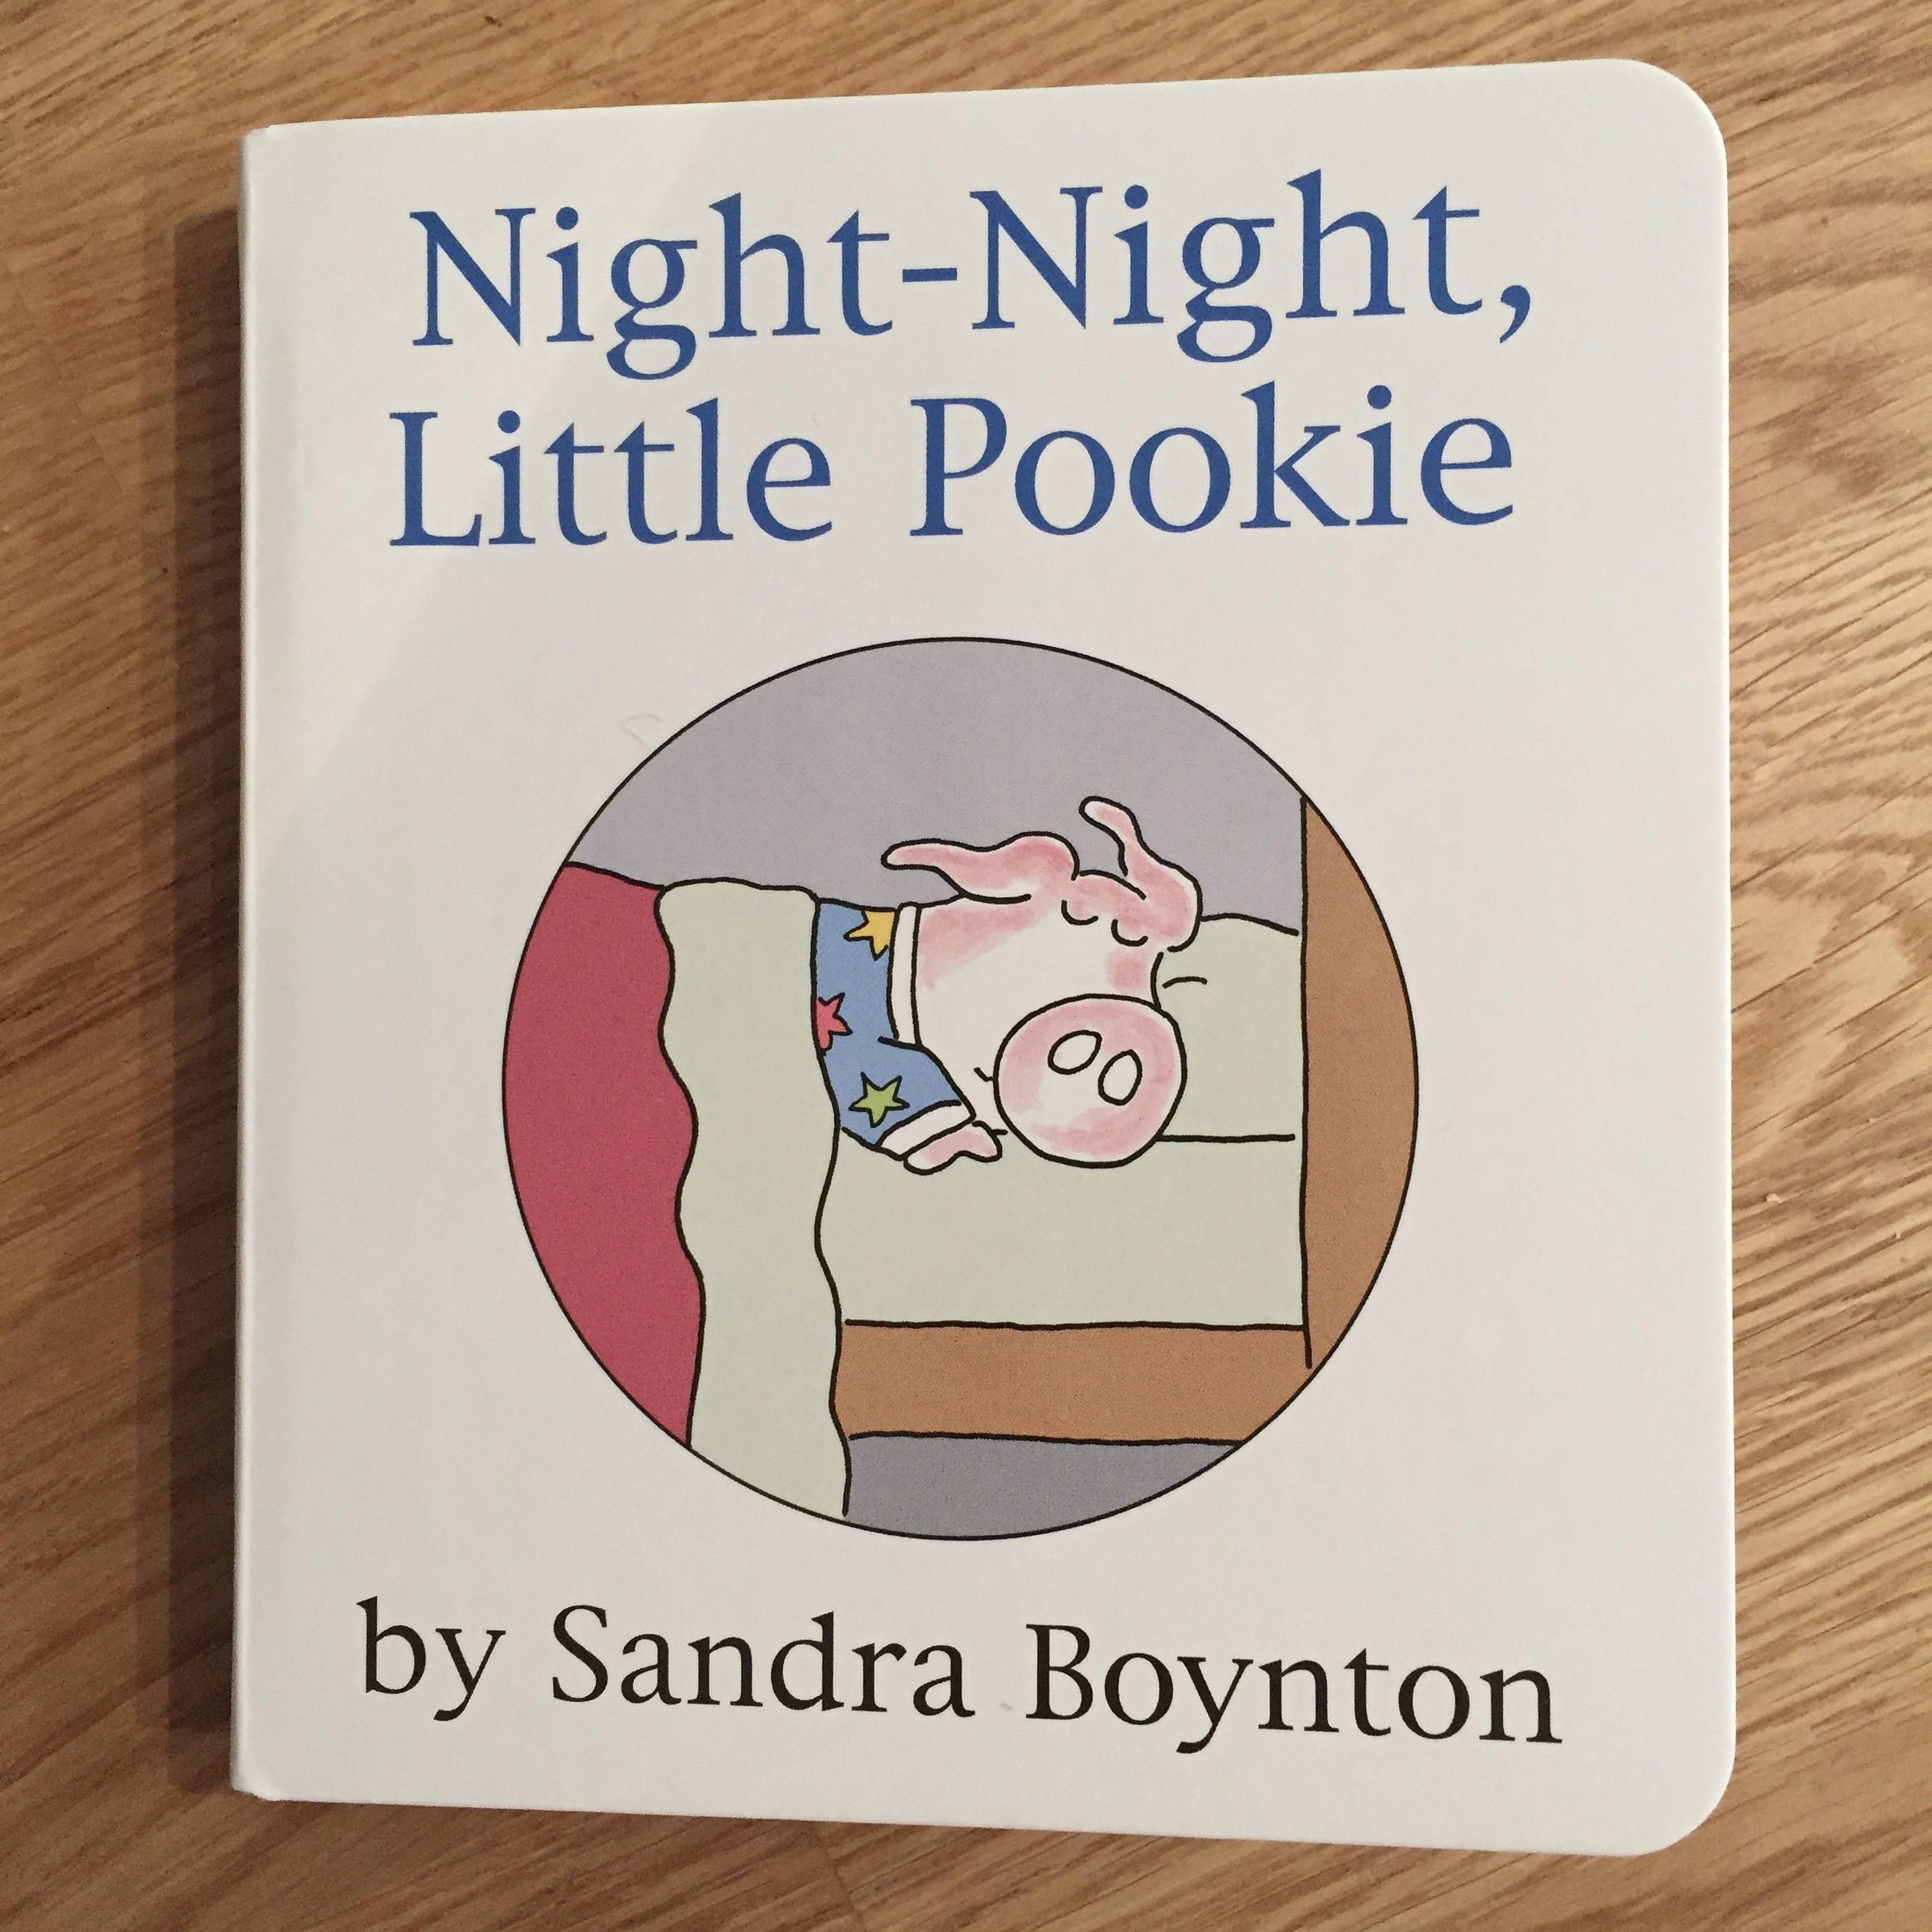 Review - Night-Night Little Pookie